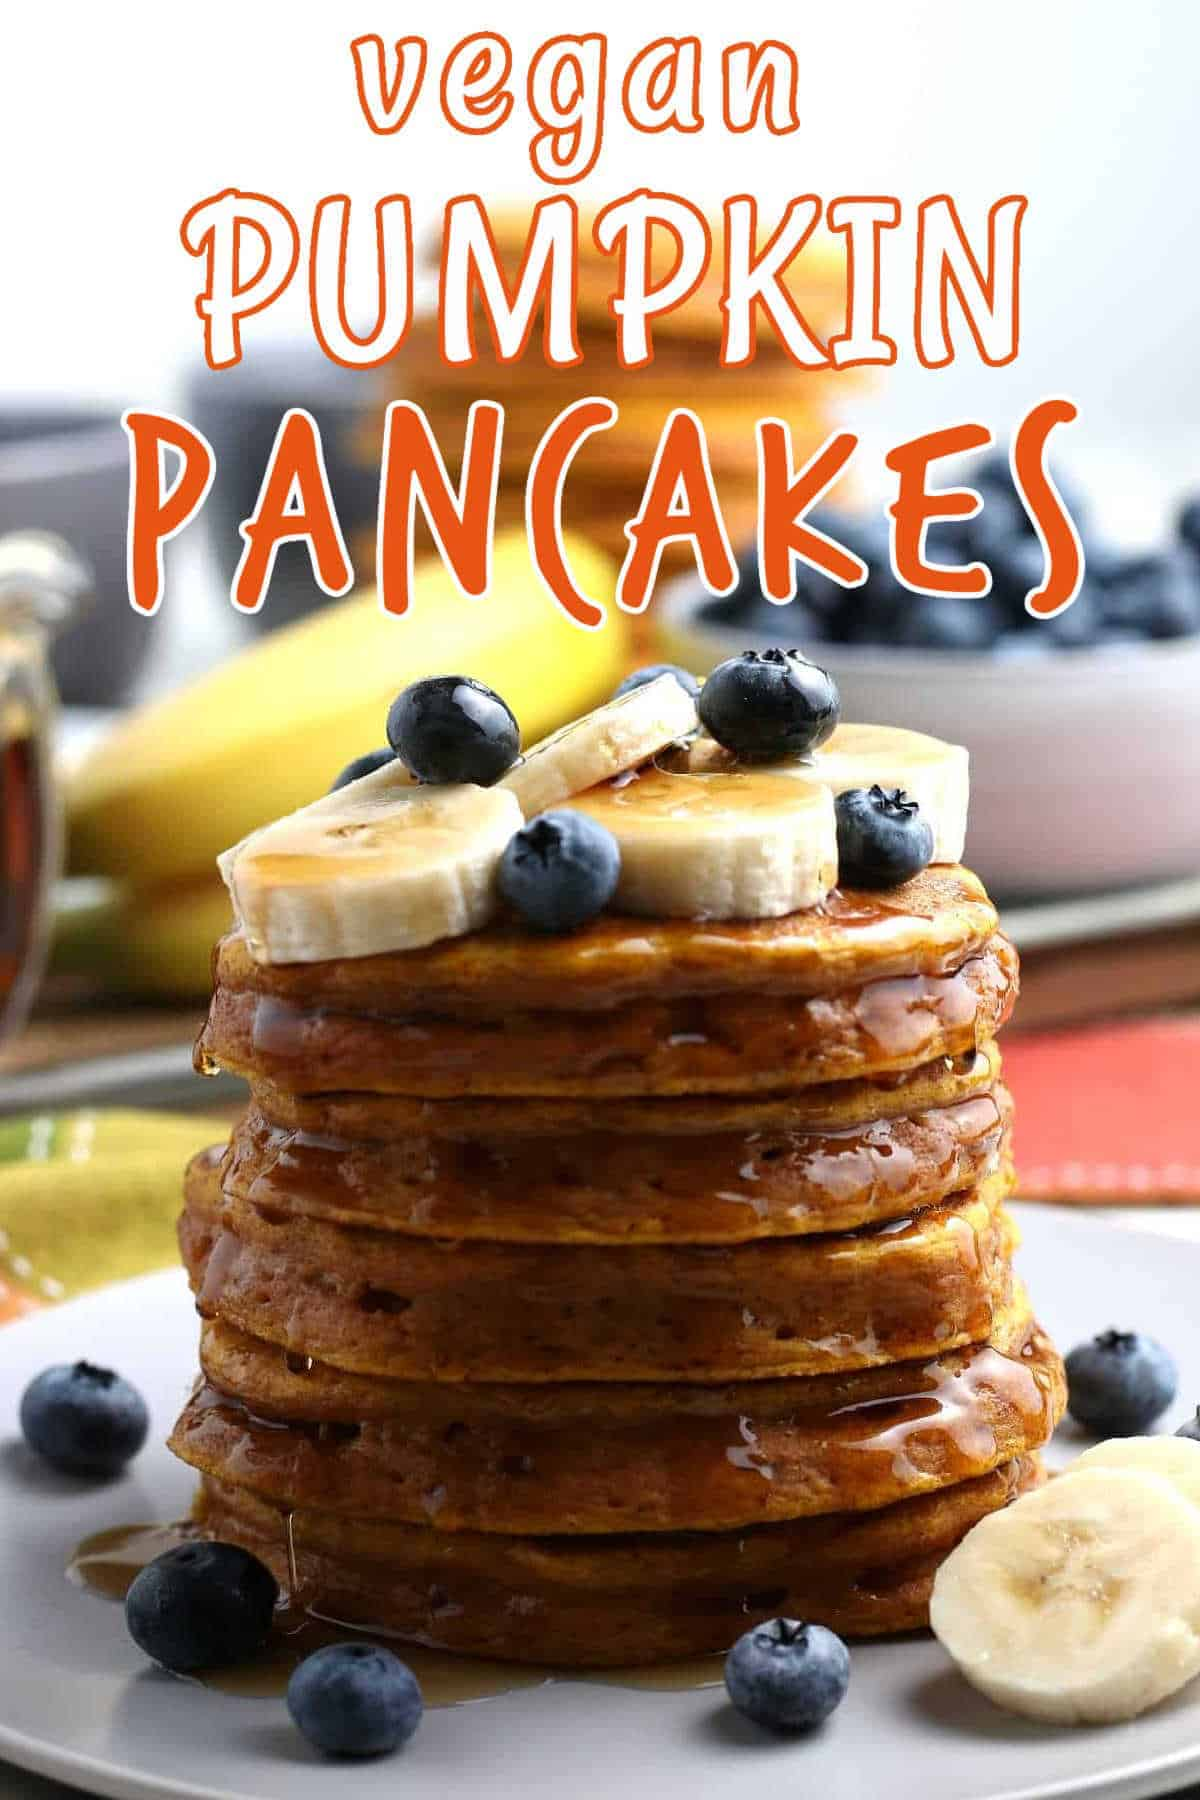 Five pancakes stacked high with syrup and fruit on top and orange text above that.